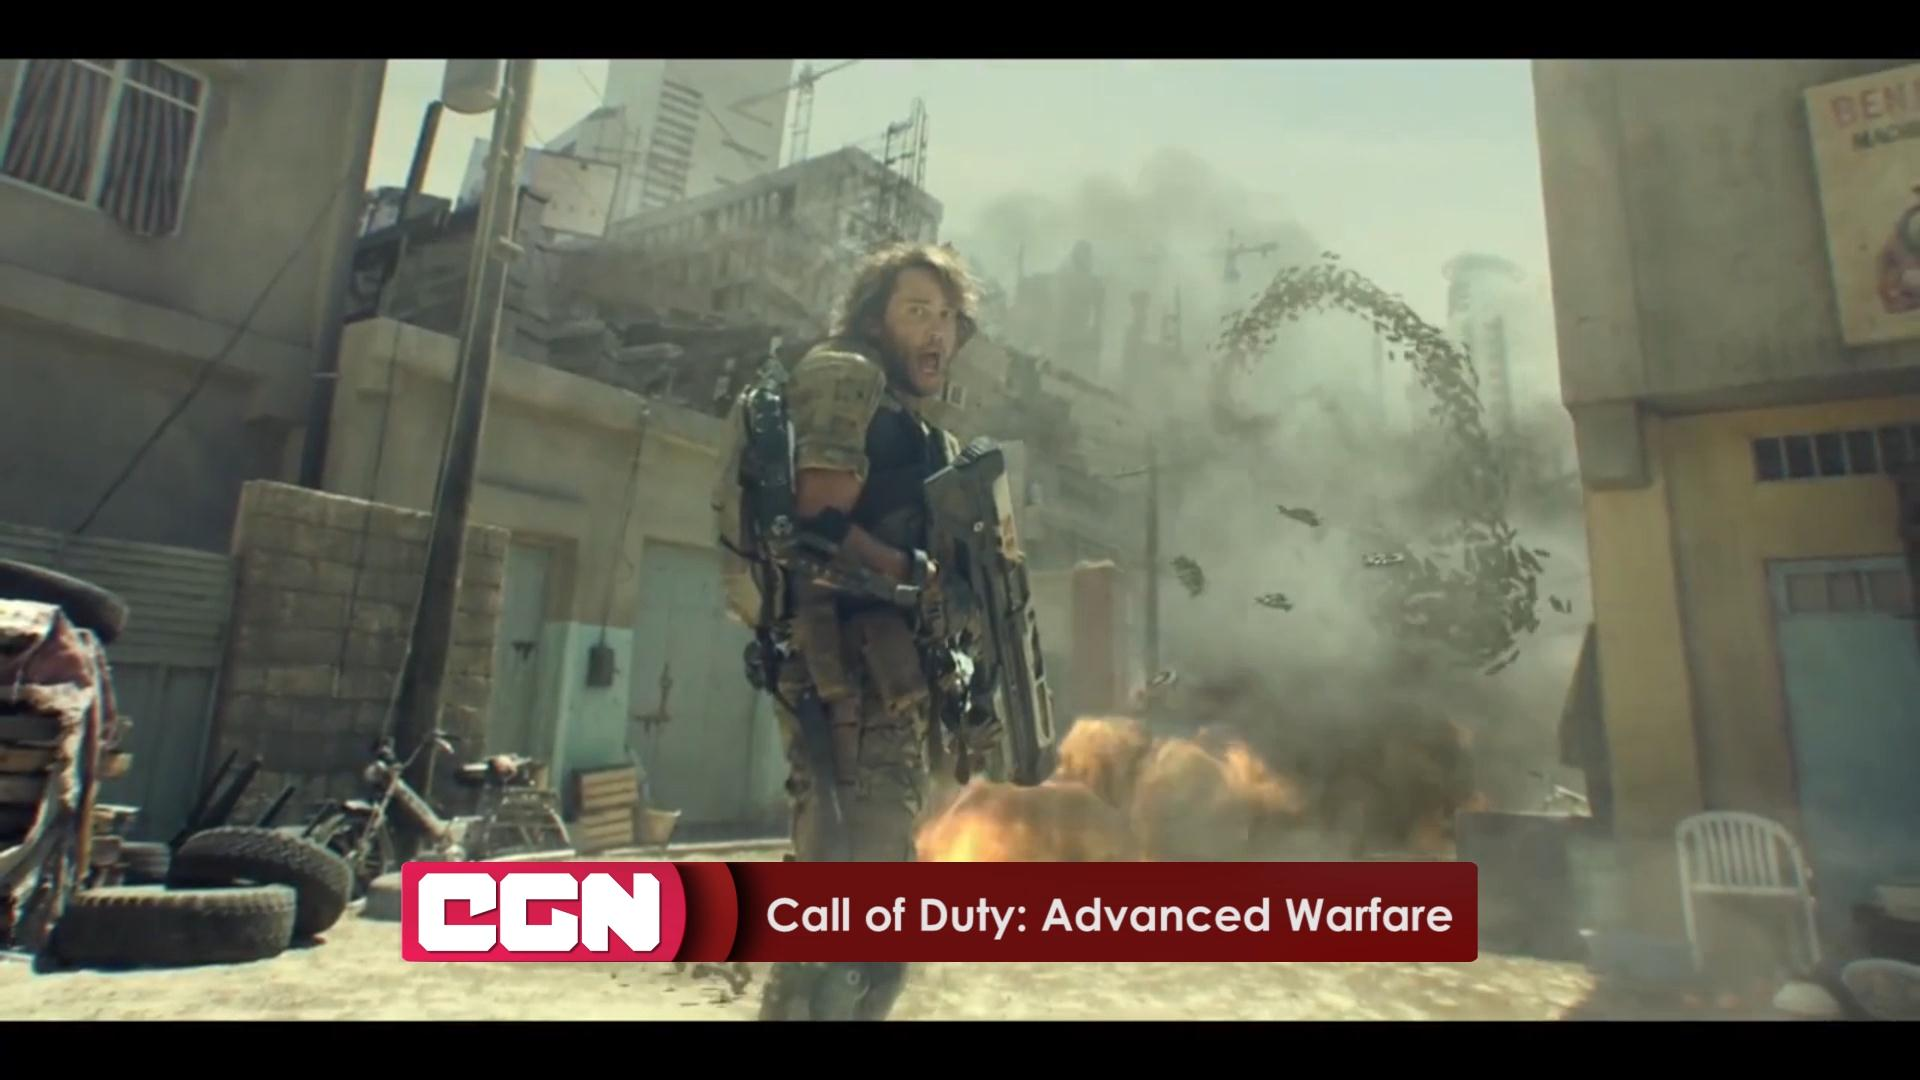 CGN новости - Call of Duty: Advanced Warfare - трейлер - 31.10.2014 14:00